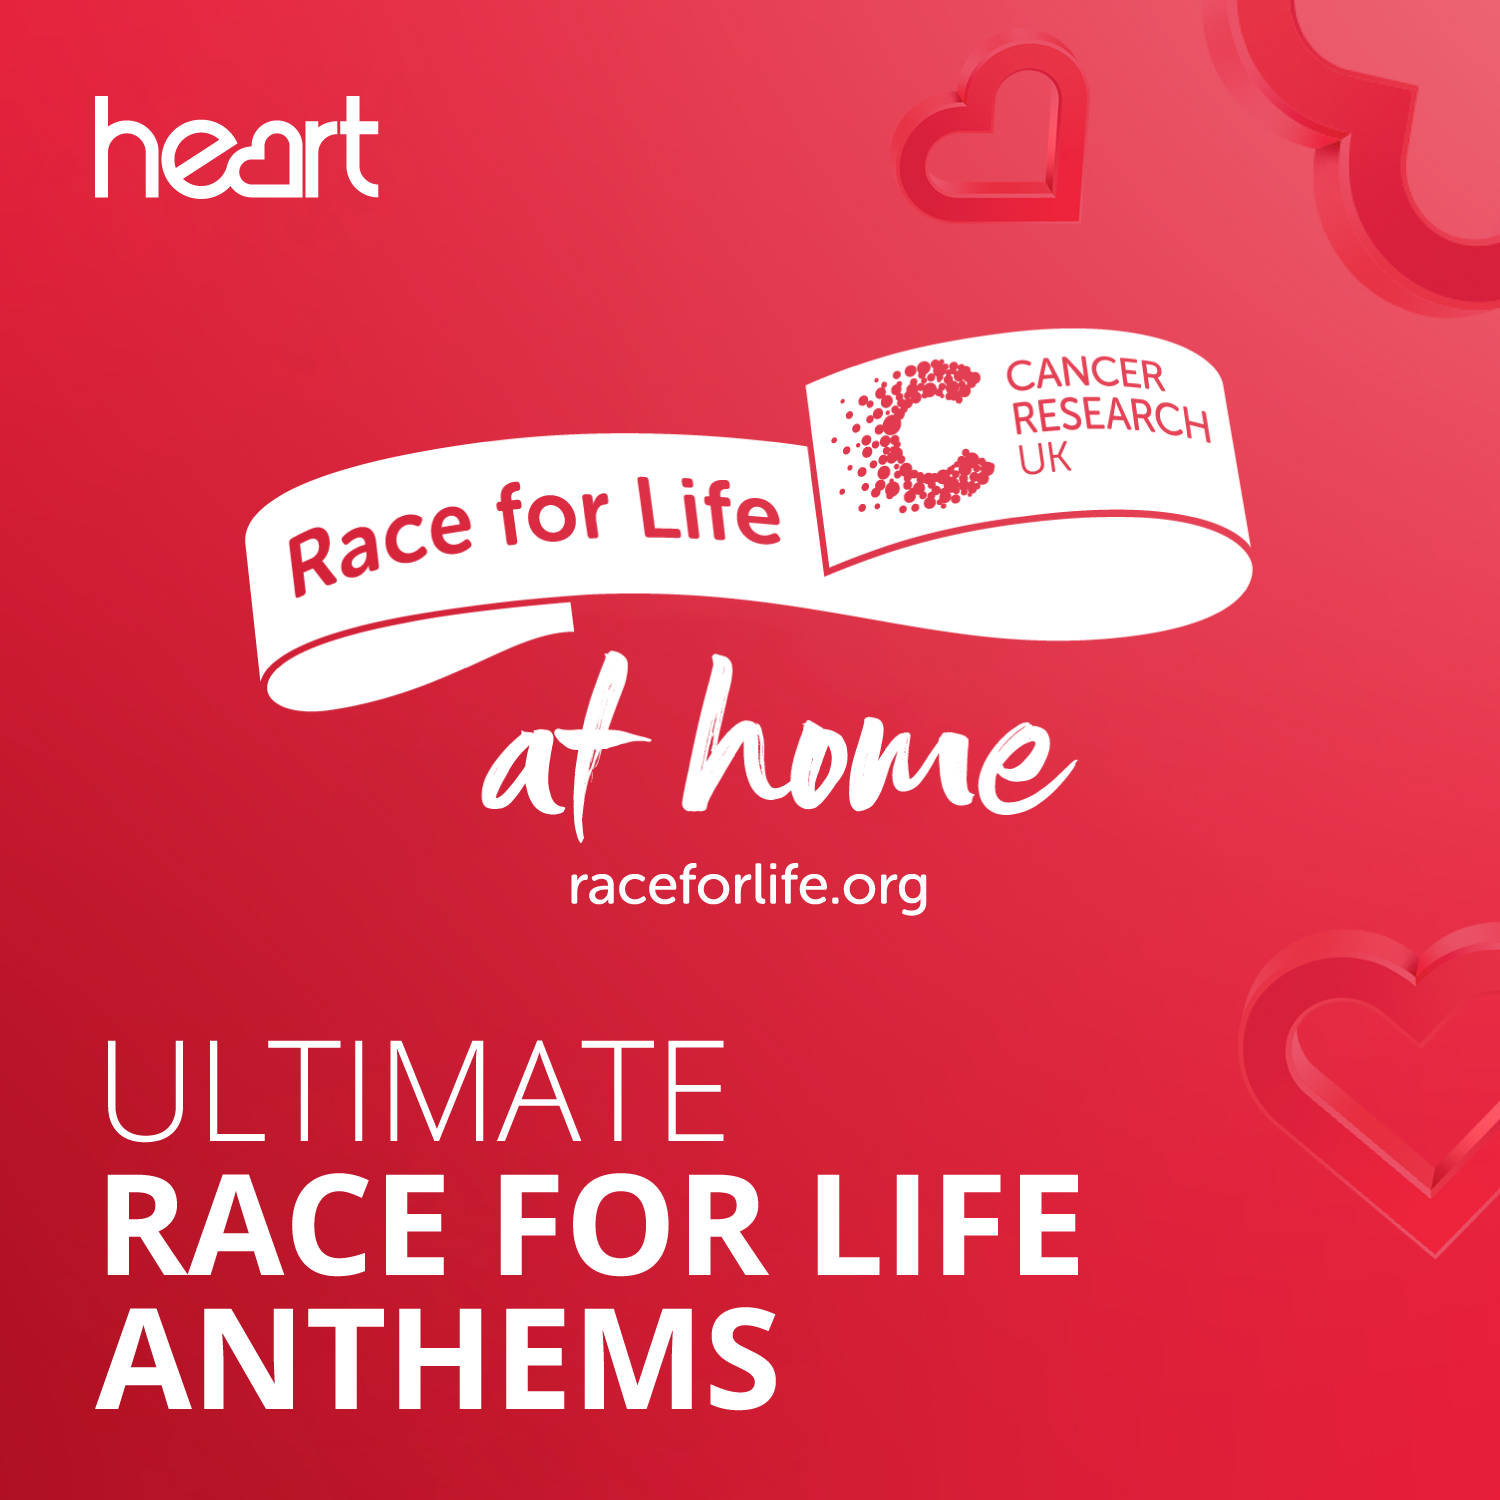 Ultimate Race For Life Anthems image